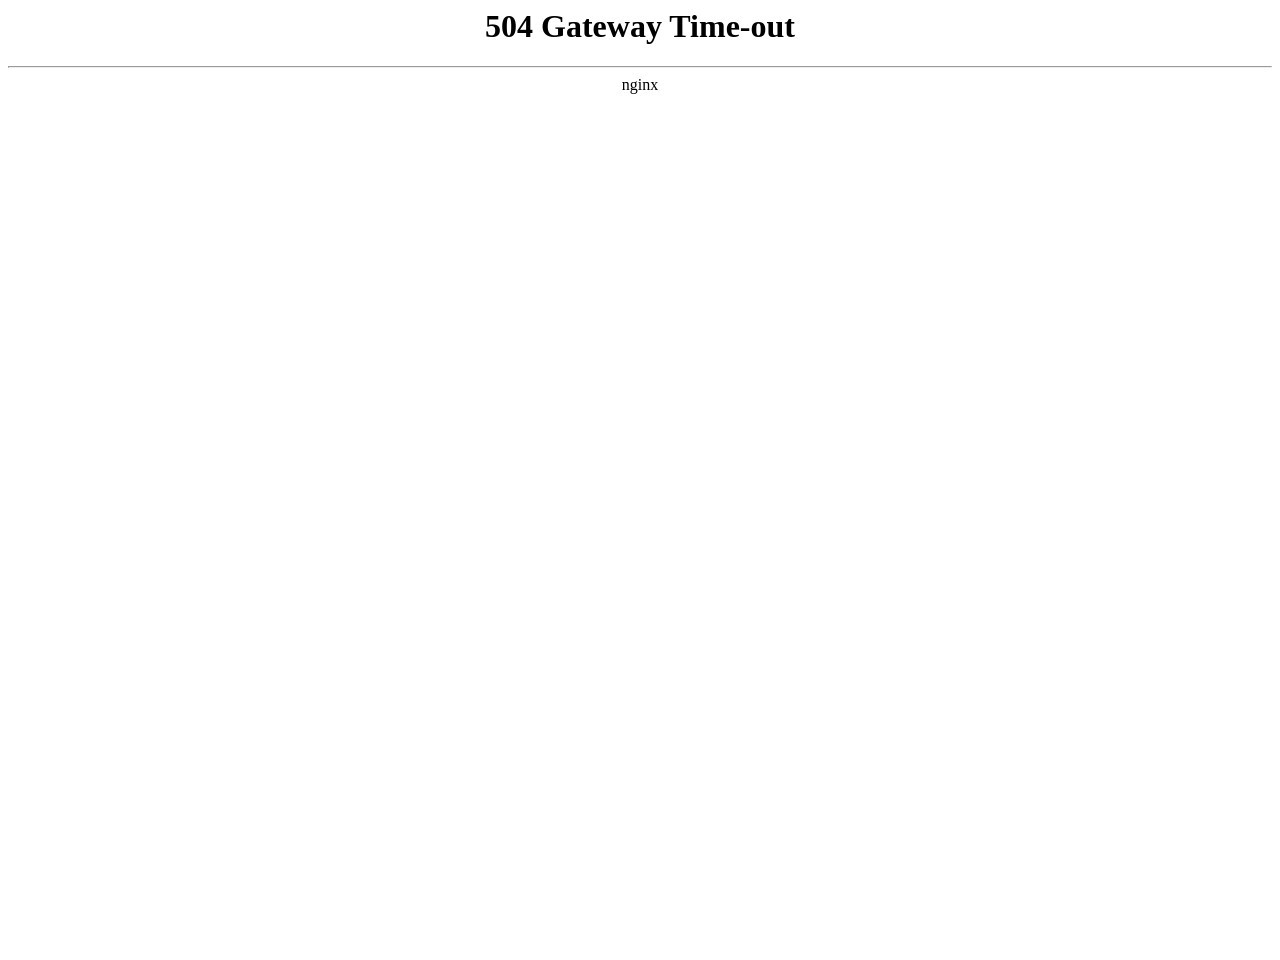 Contracts awarded for Riverbend Park restoration